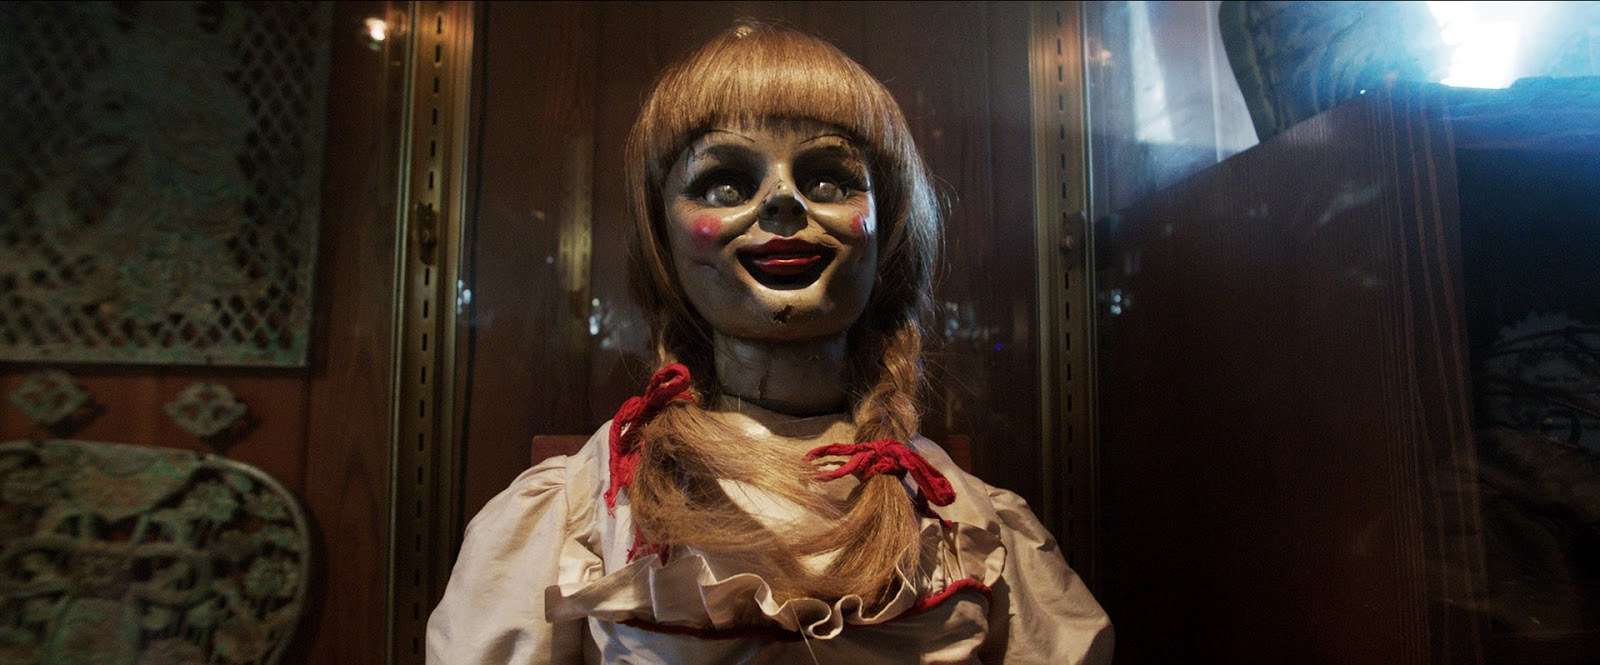 the-conjuring-annabell-the-doll-face-glass-case